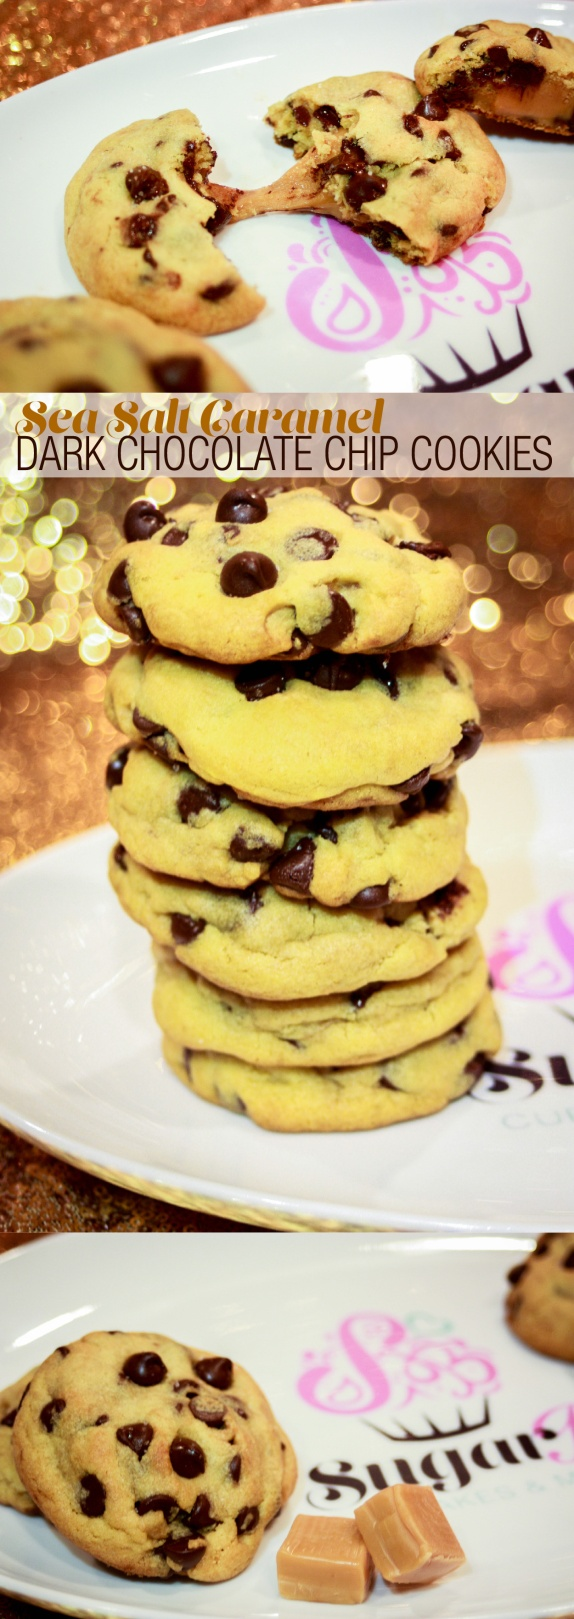 Salted Caramel Dark Chocolate Chip Cookies-1-01